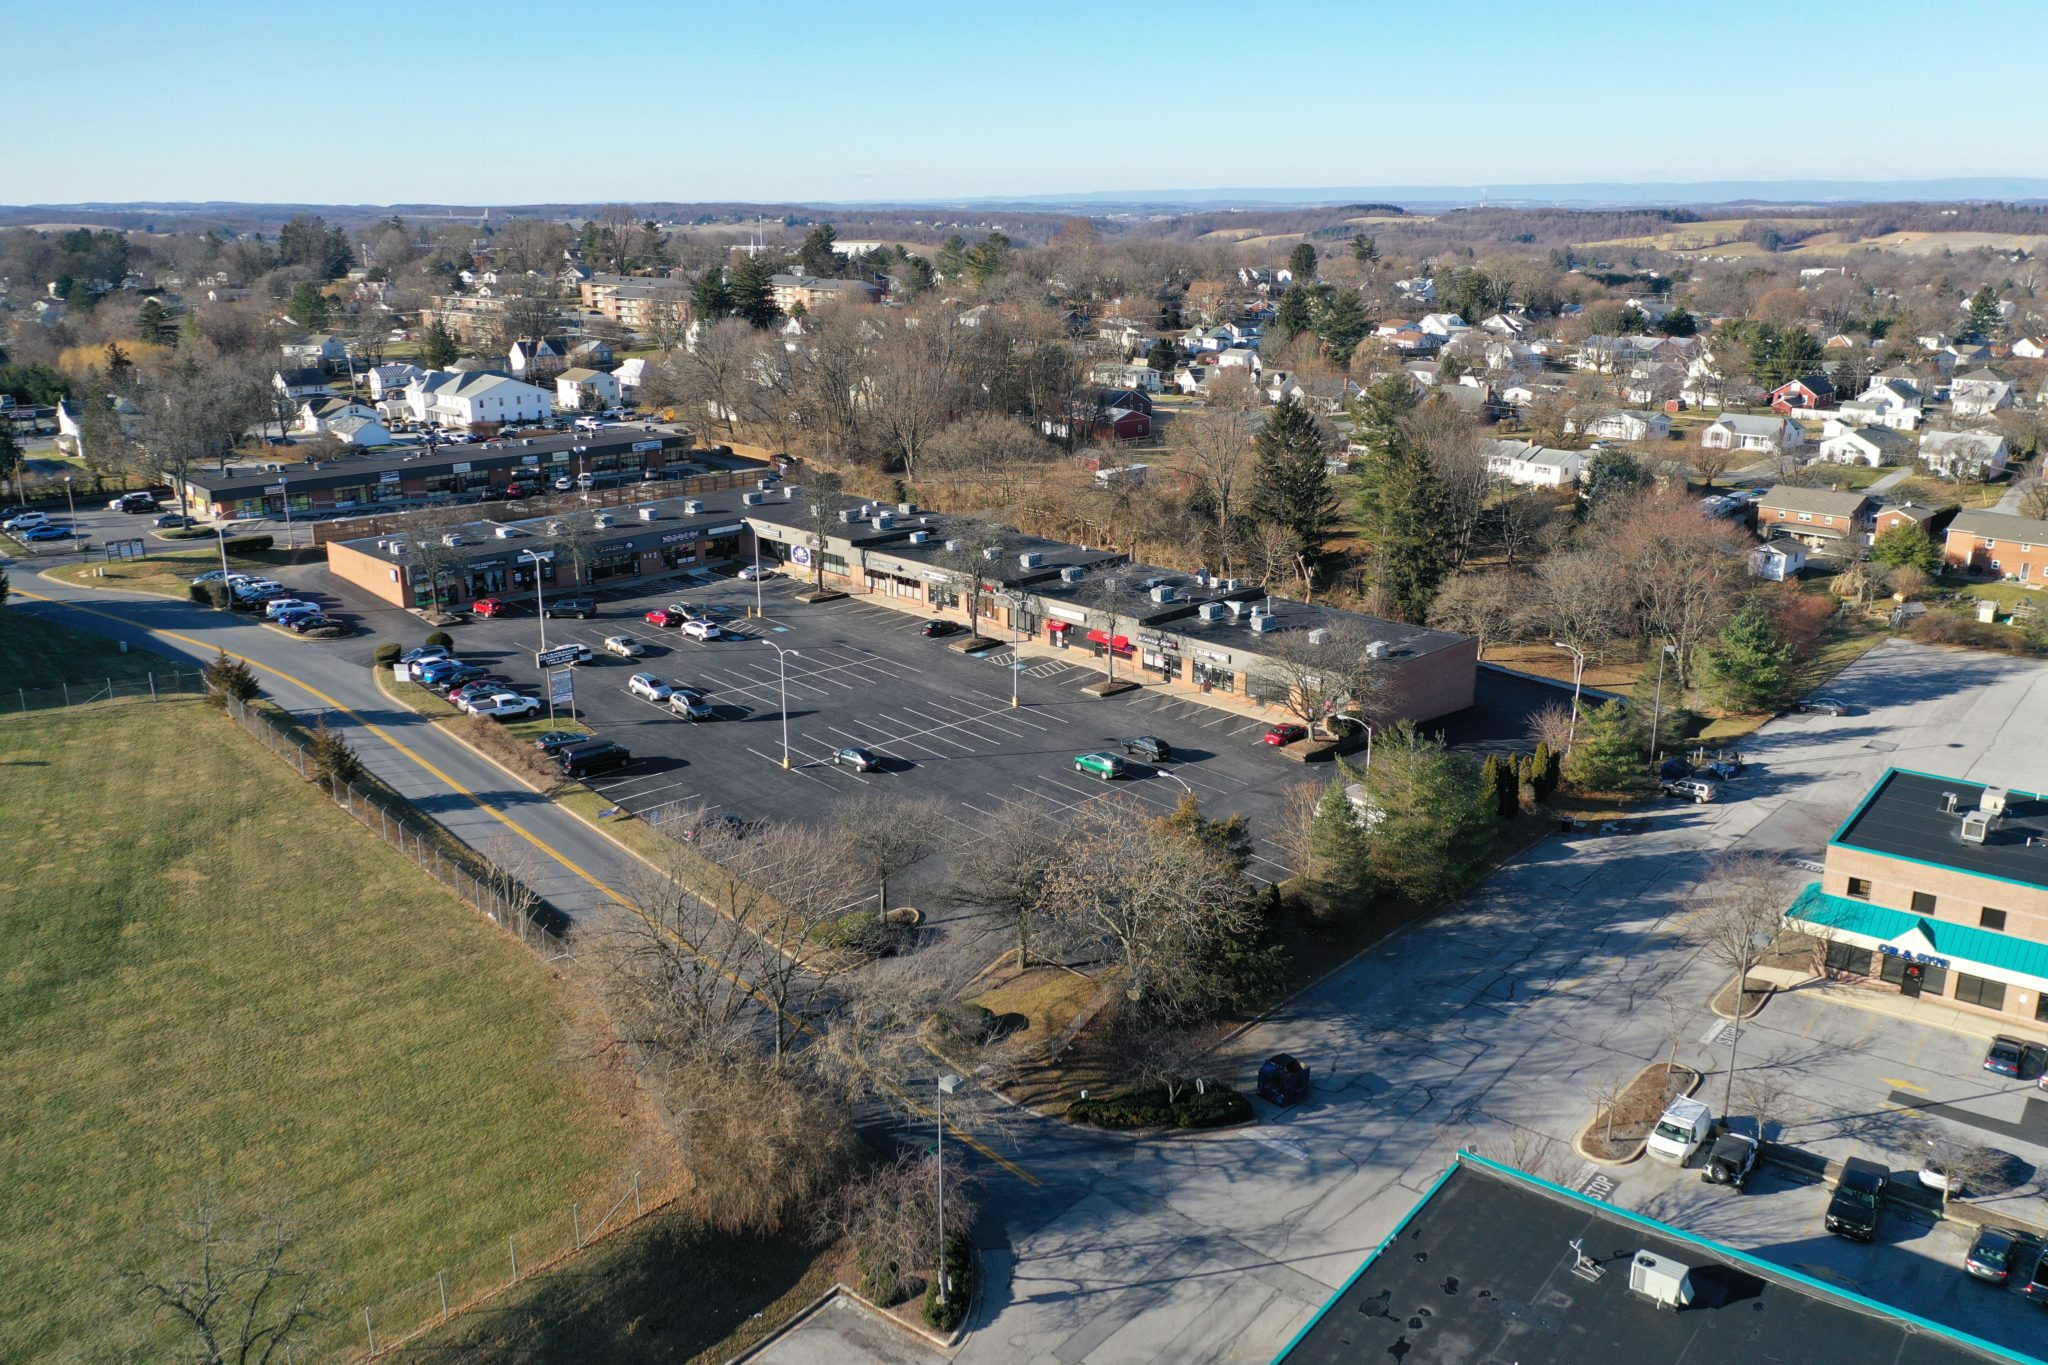 Edge Brokers Sale Of 29,000 SF Neighborhood Retail Center In Carroll County, Maryland For $4.5M